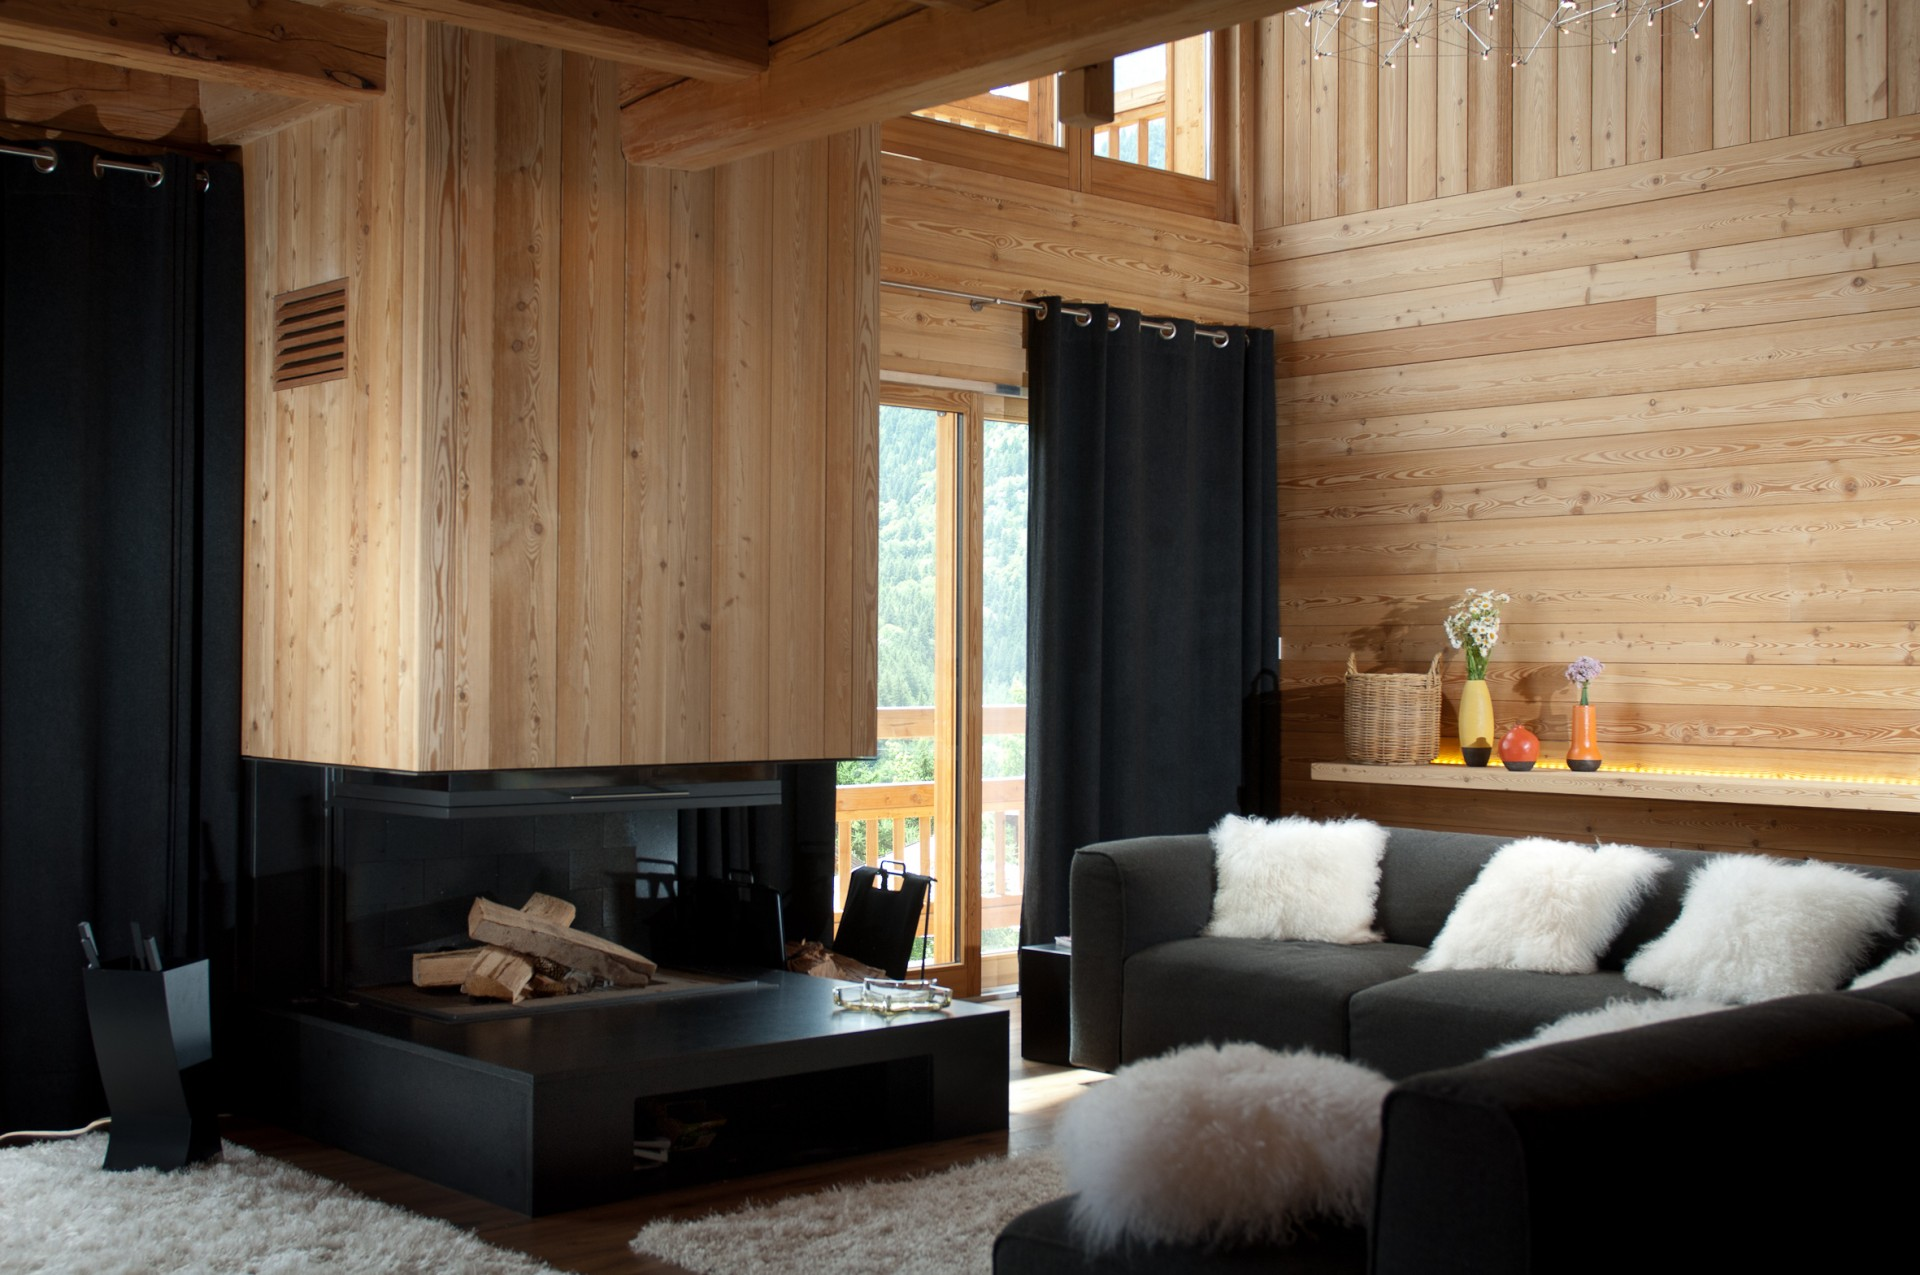 Self-catering chalet in Serre Chevalier